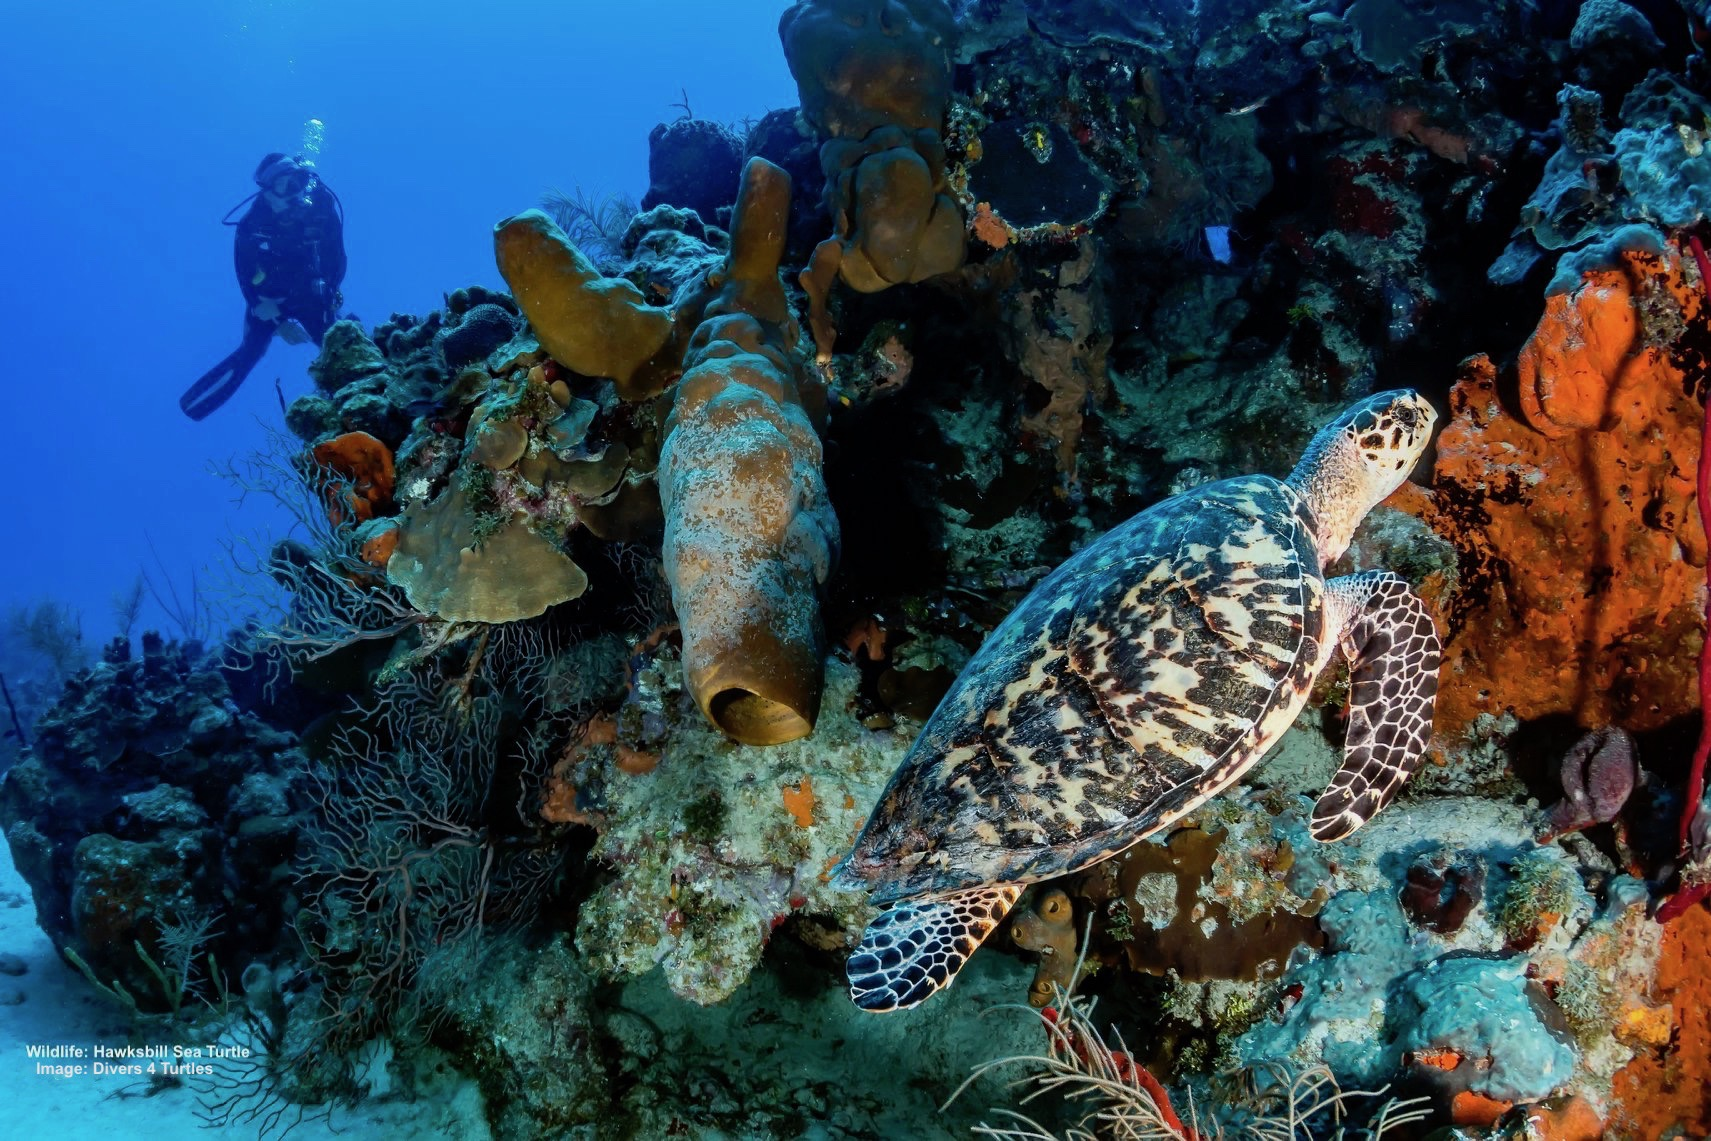 BRAD NAHILL TOLD US HOW ABOUT SEA TURTLE CITIZEN SCIENCE IS HELPING THESE ANCIENT CREATURES SURVIVE. IMAGE: ©WHITCOMBERD I DREAMSTIME.COM